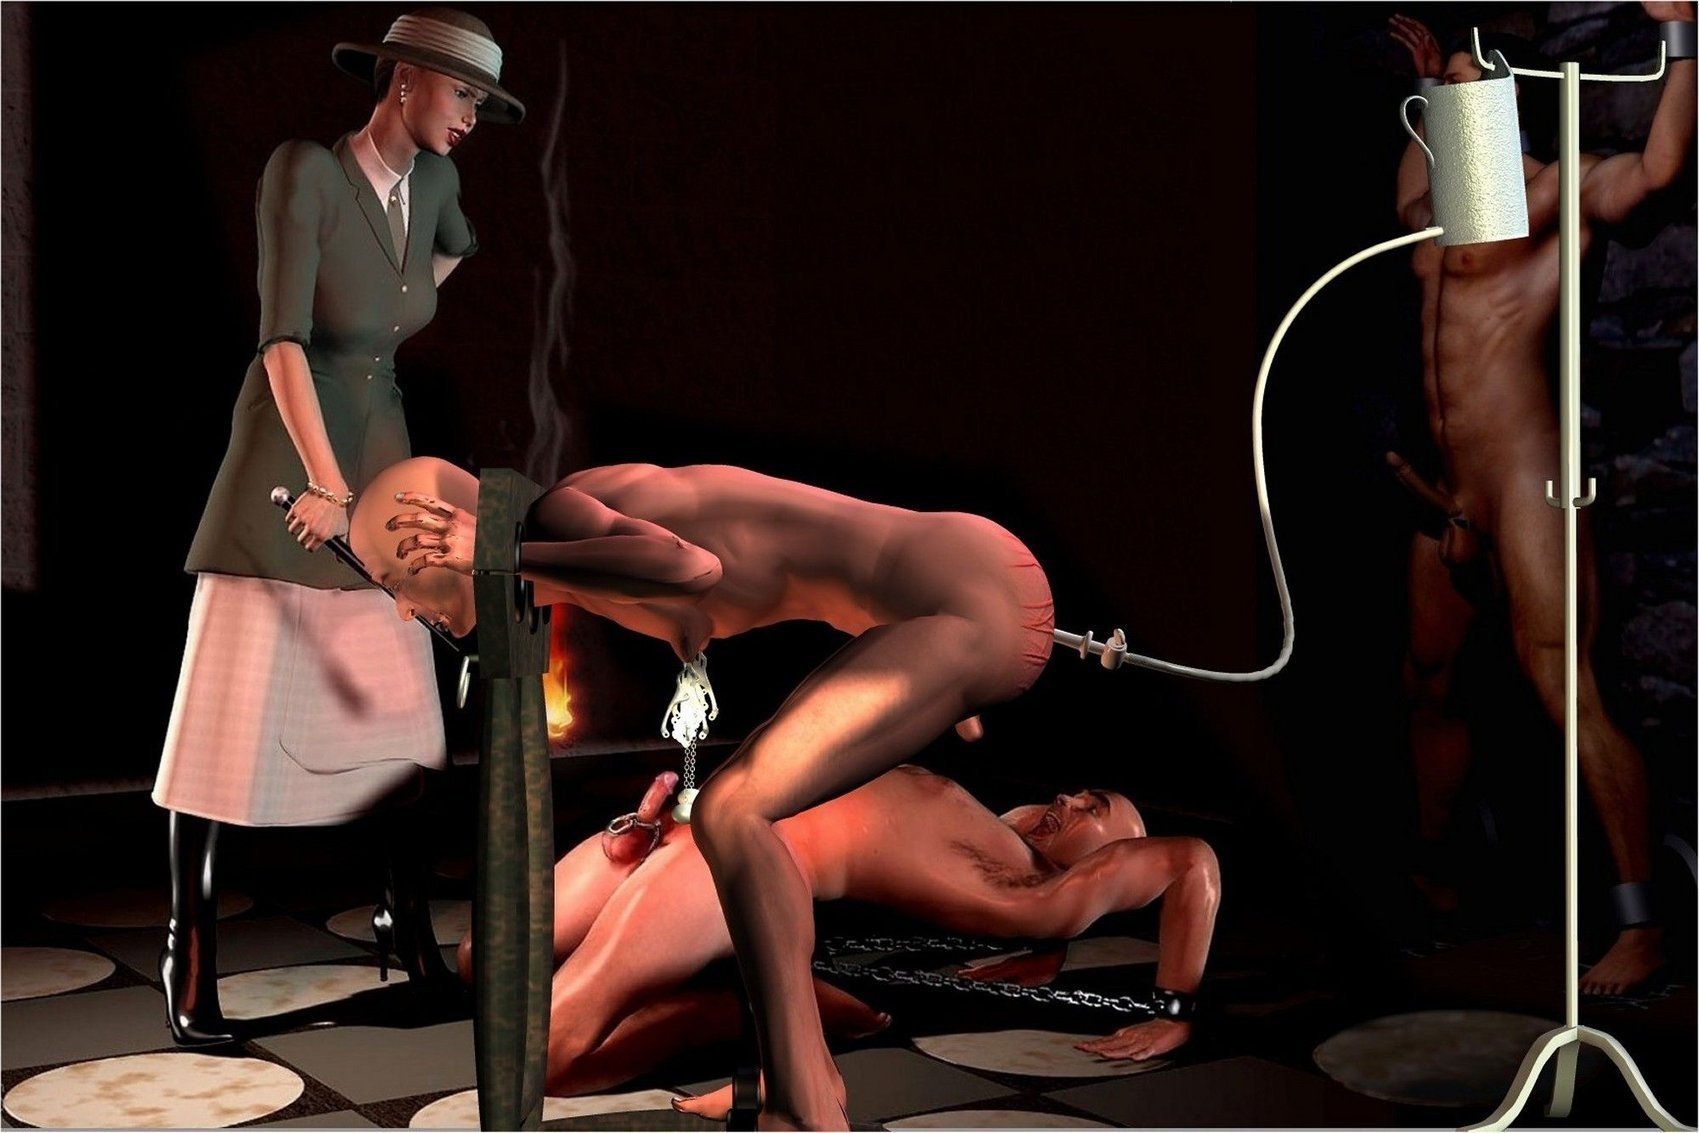 Female domination male spekula torture, chubby girls get facials